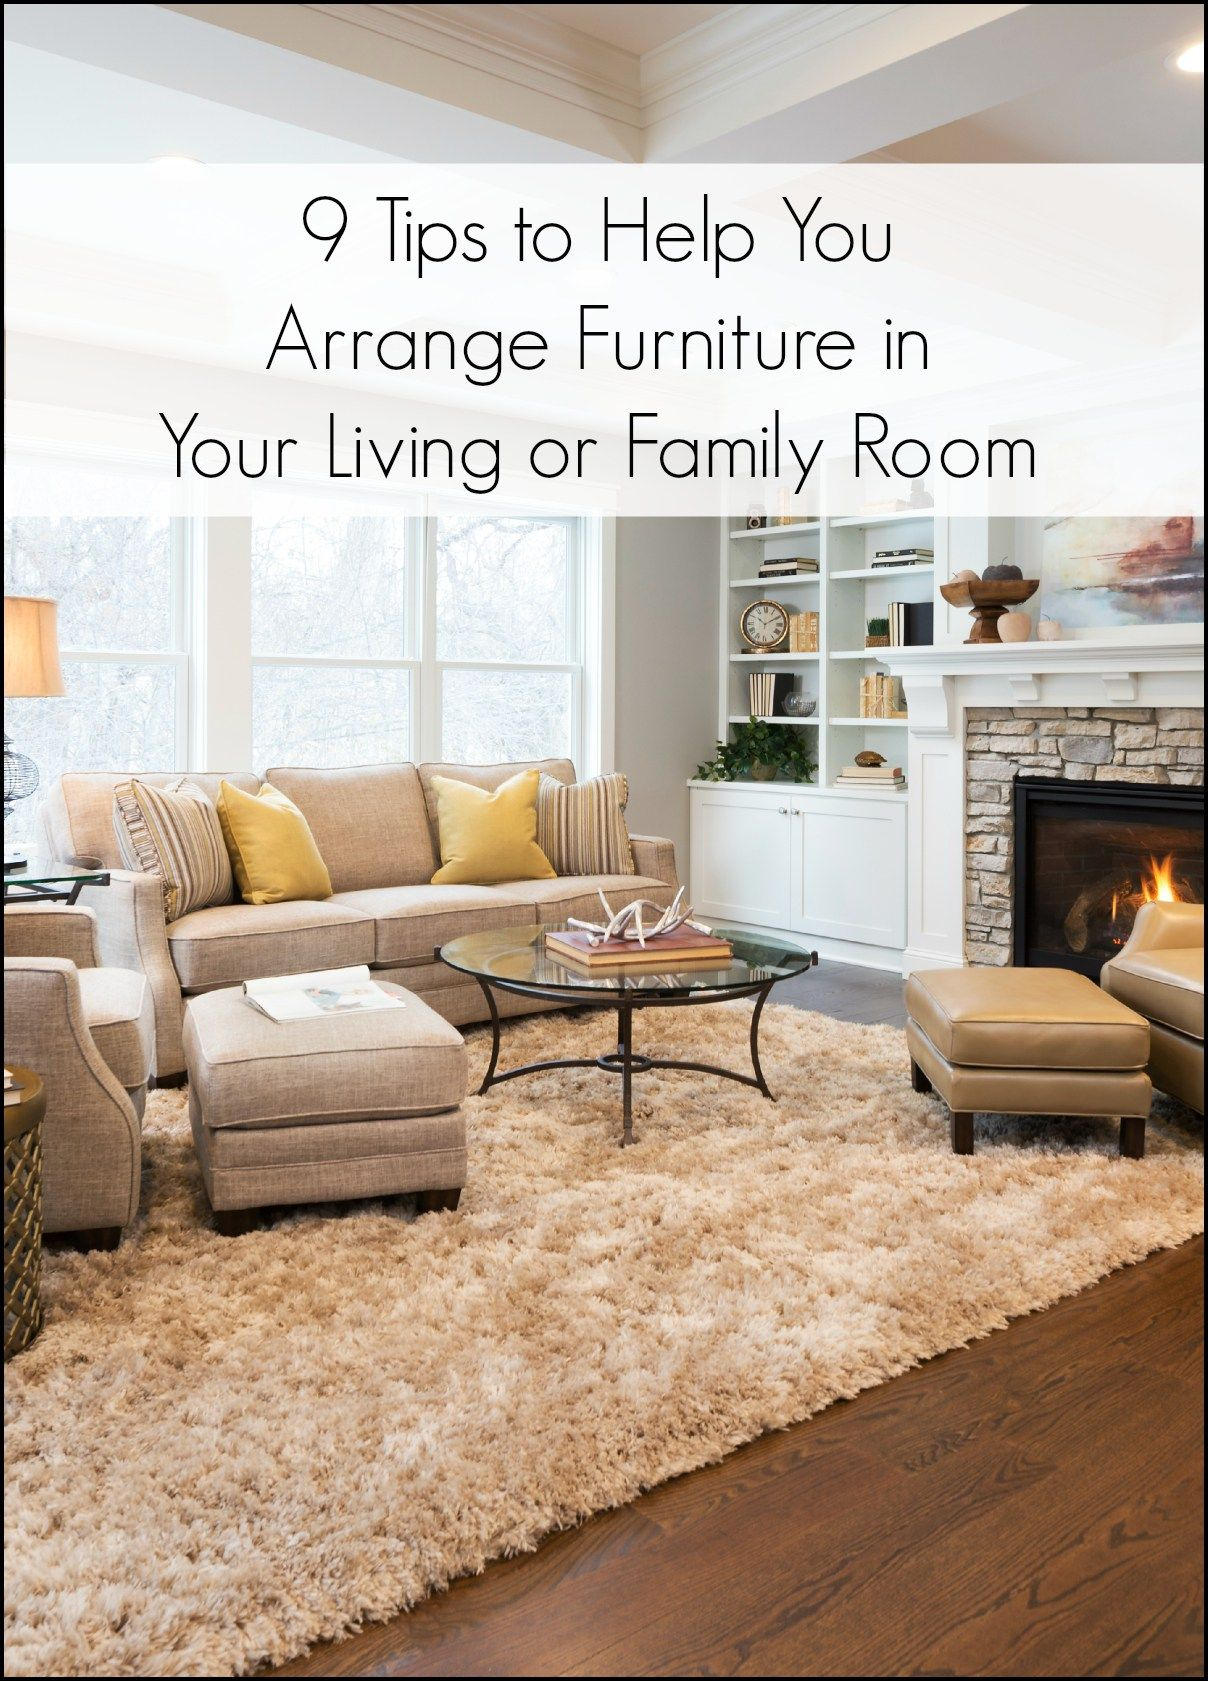 Living Room Furniture Arrangement 9 Tips For Arranging Furniture In A Living Room Or Family Room